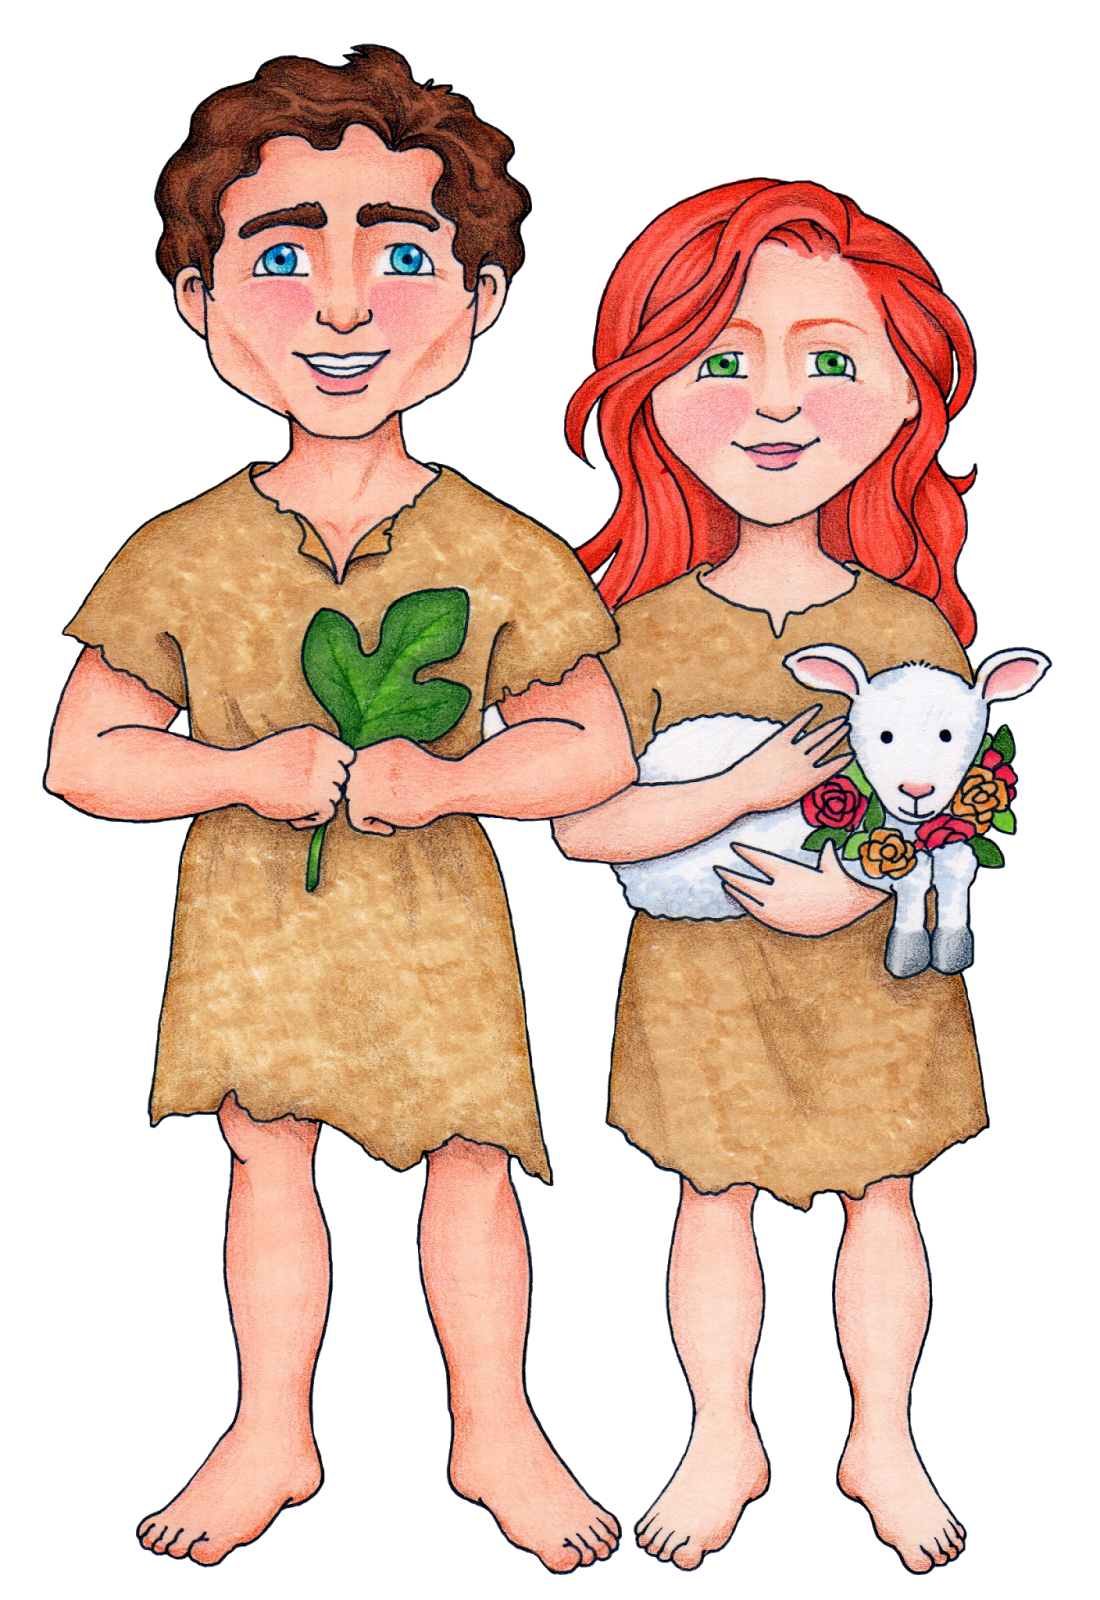 Adam And Eve clipart Cain And Abel Clipart Storybook  Abel and My